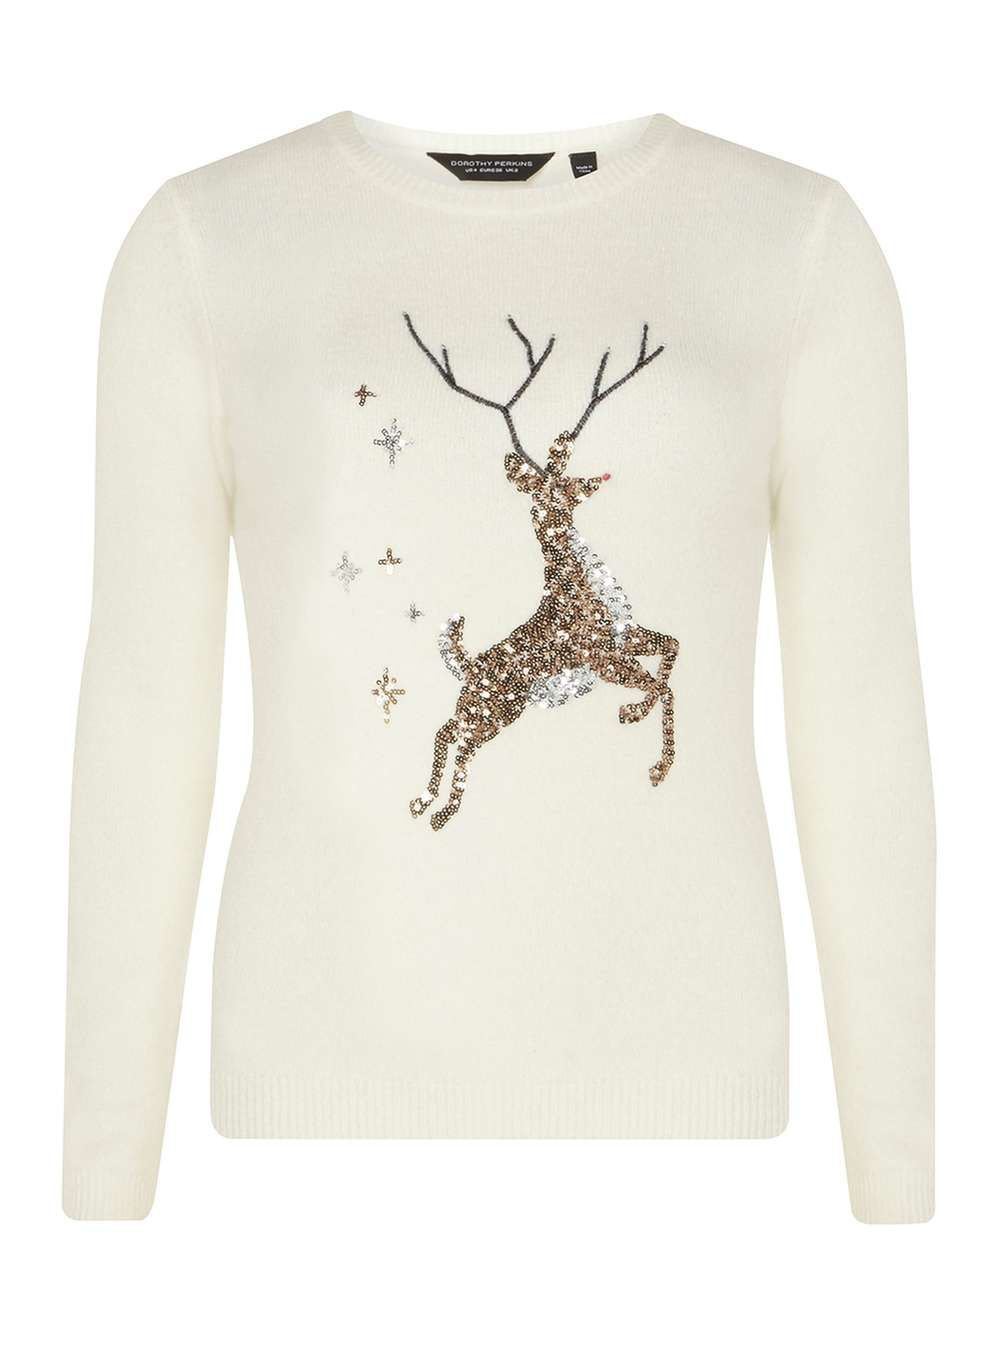 Cream Sequin Reindeer Christmas Jumper - View All New In - New In ...